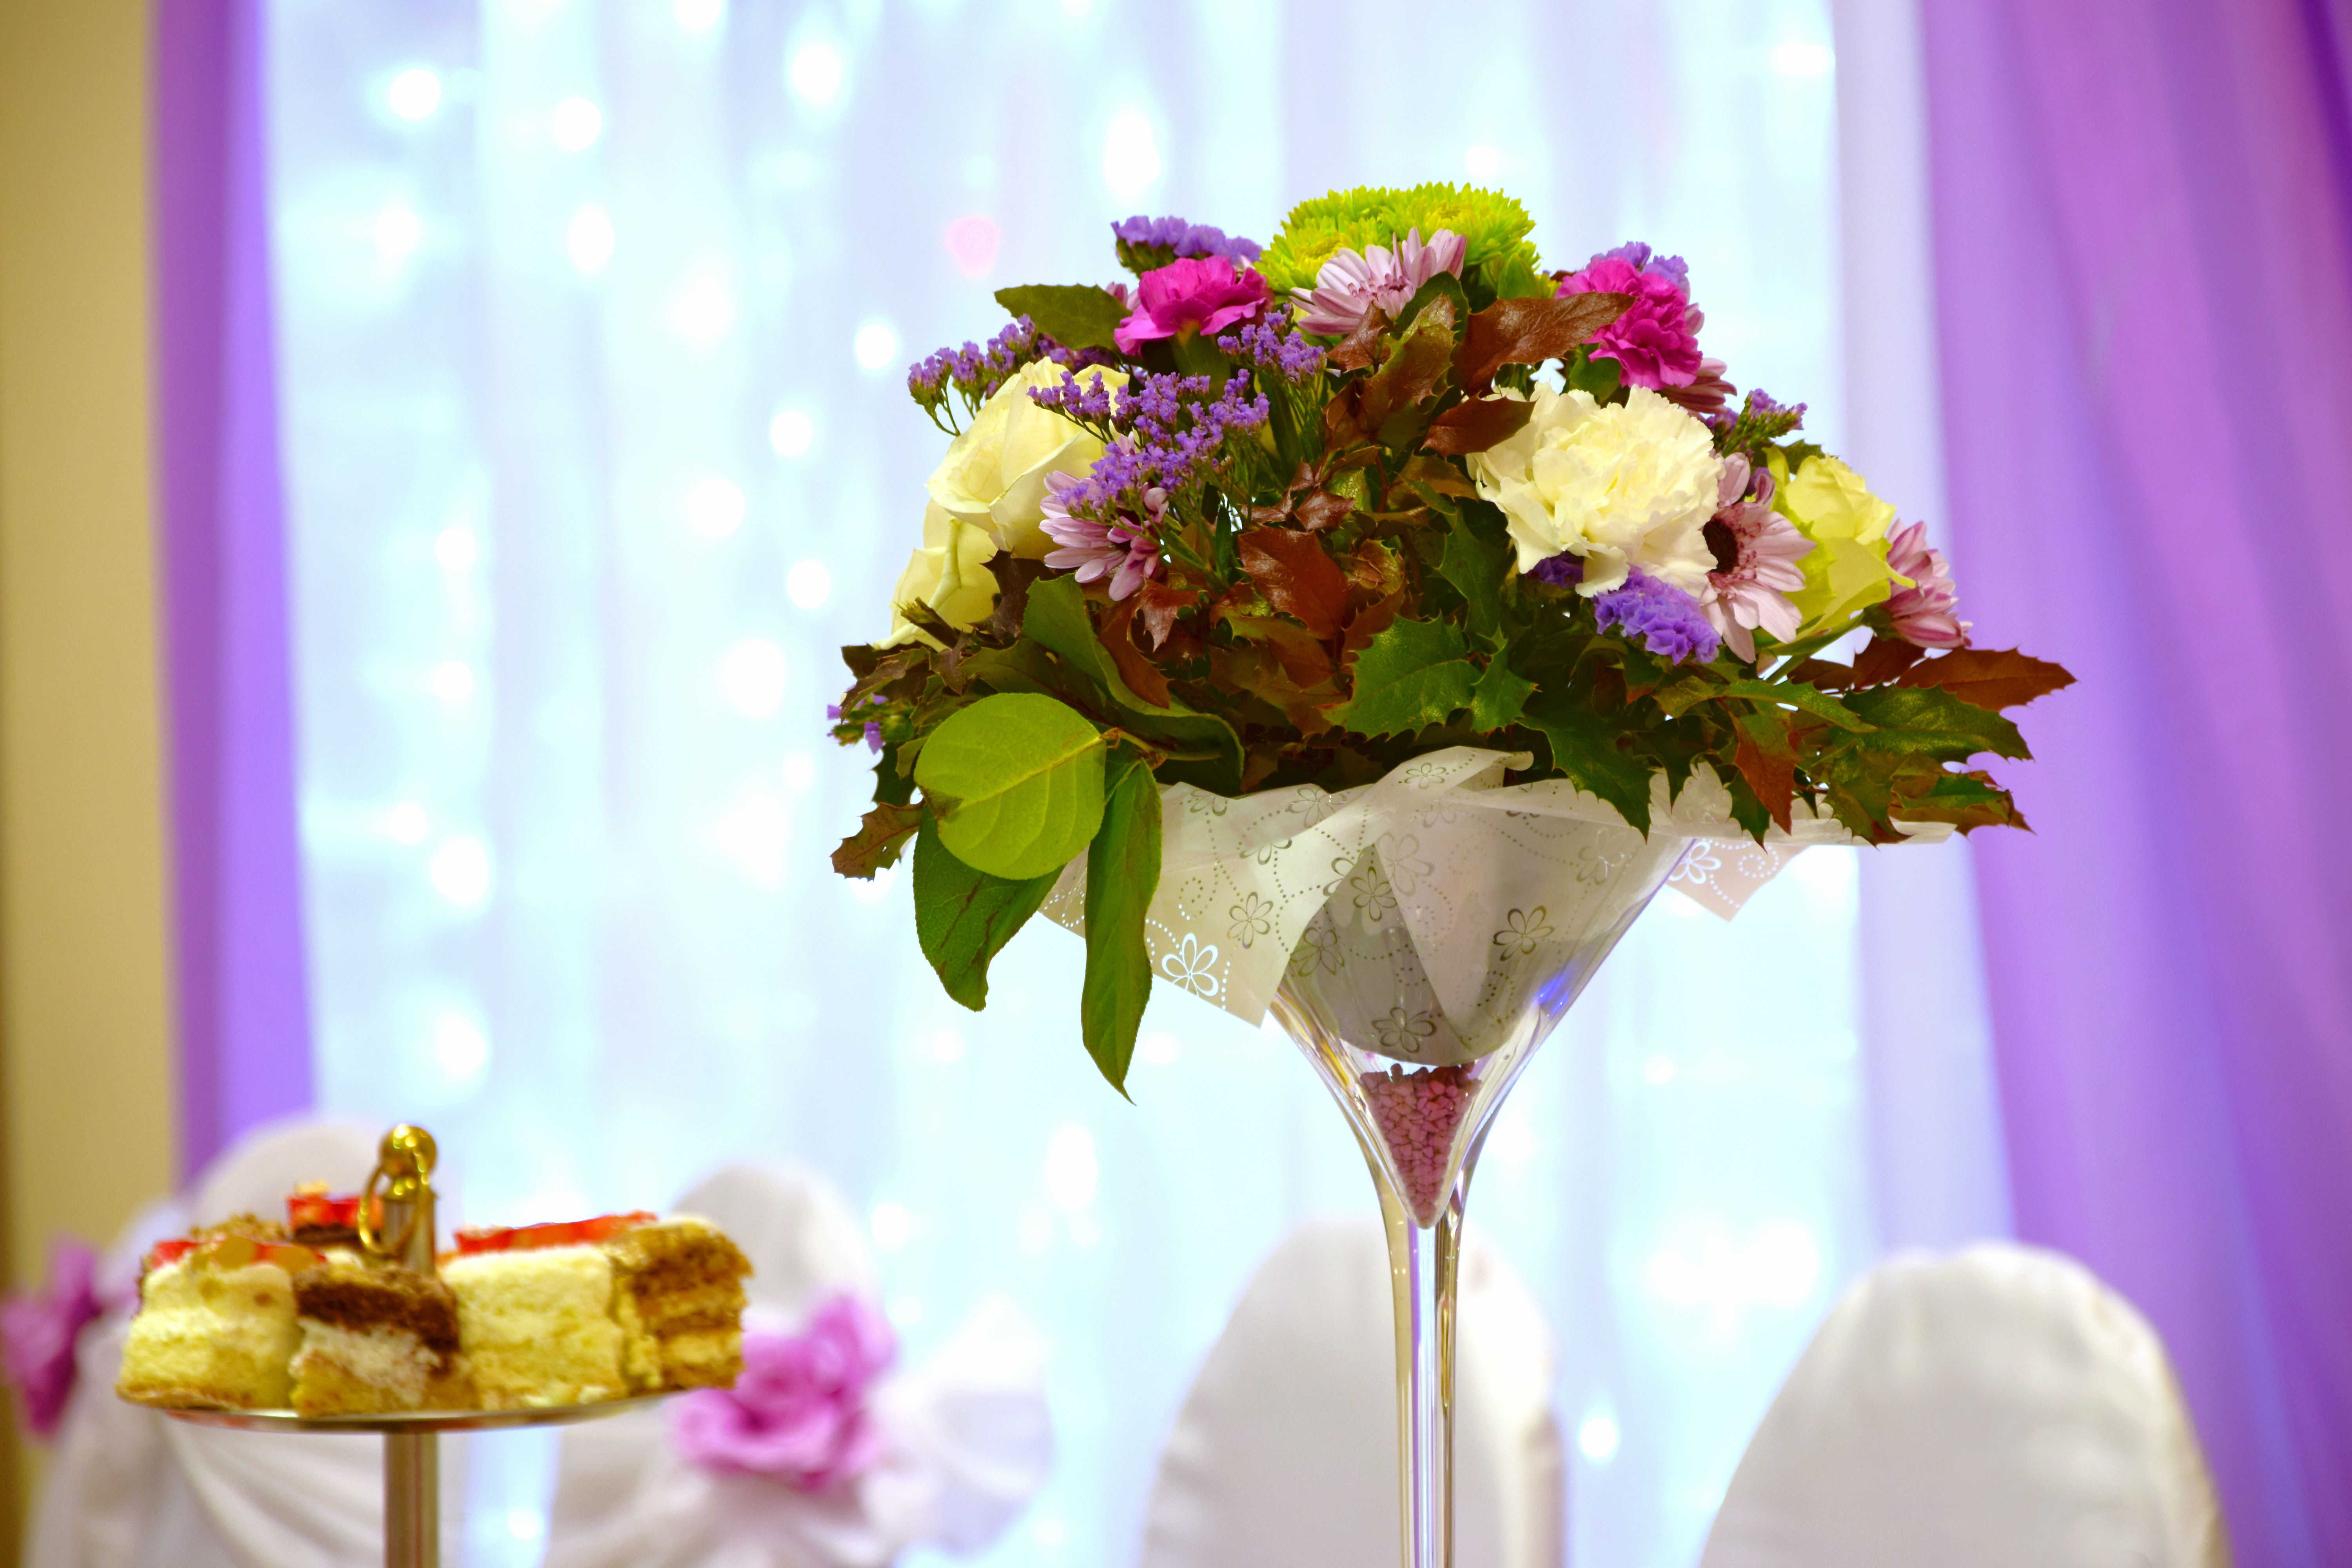 Special Event location with themed parties, catering and Tea